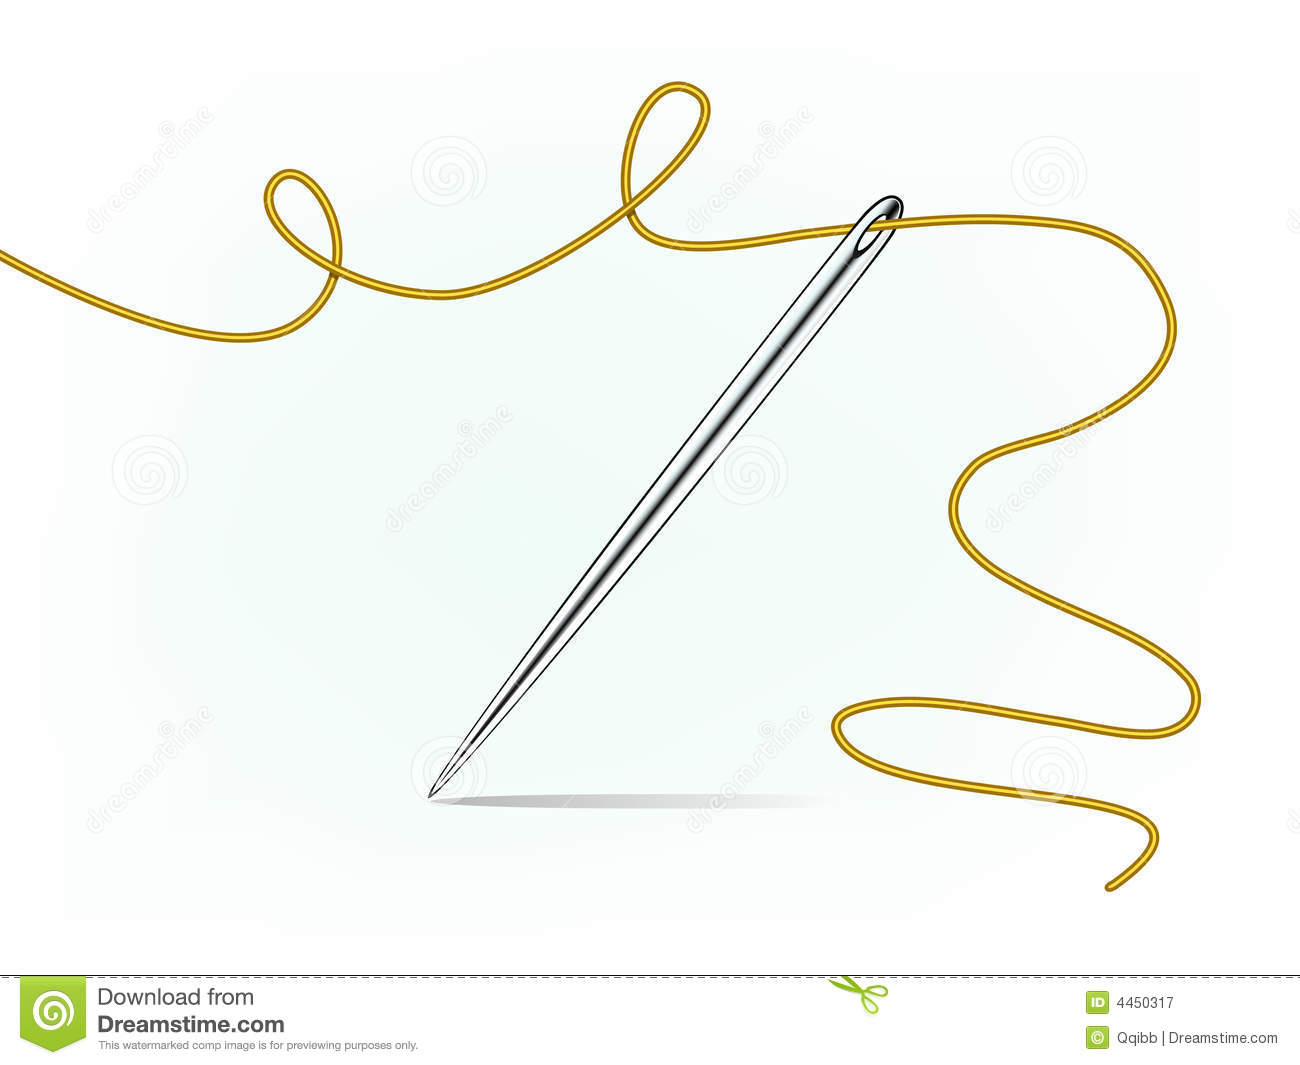 Sewing Needle Clipart.